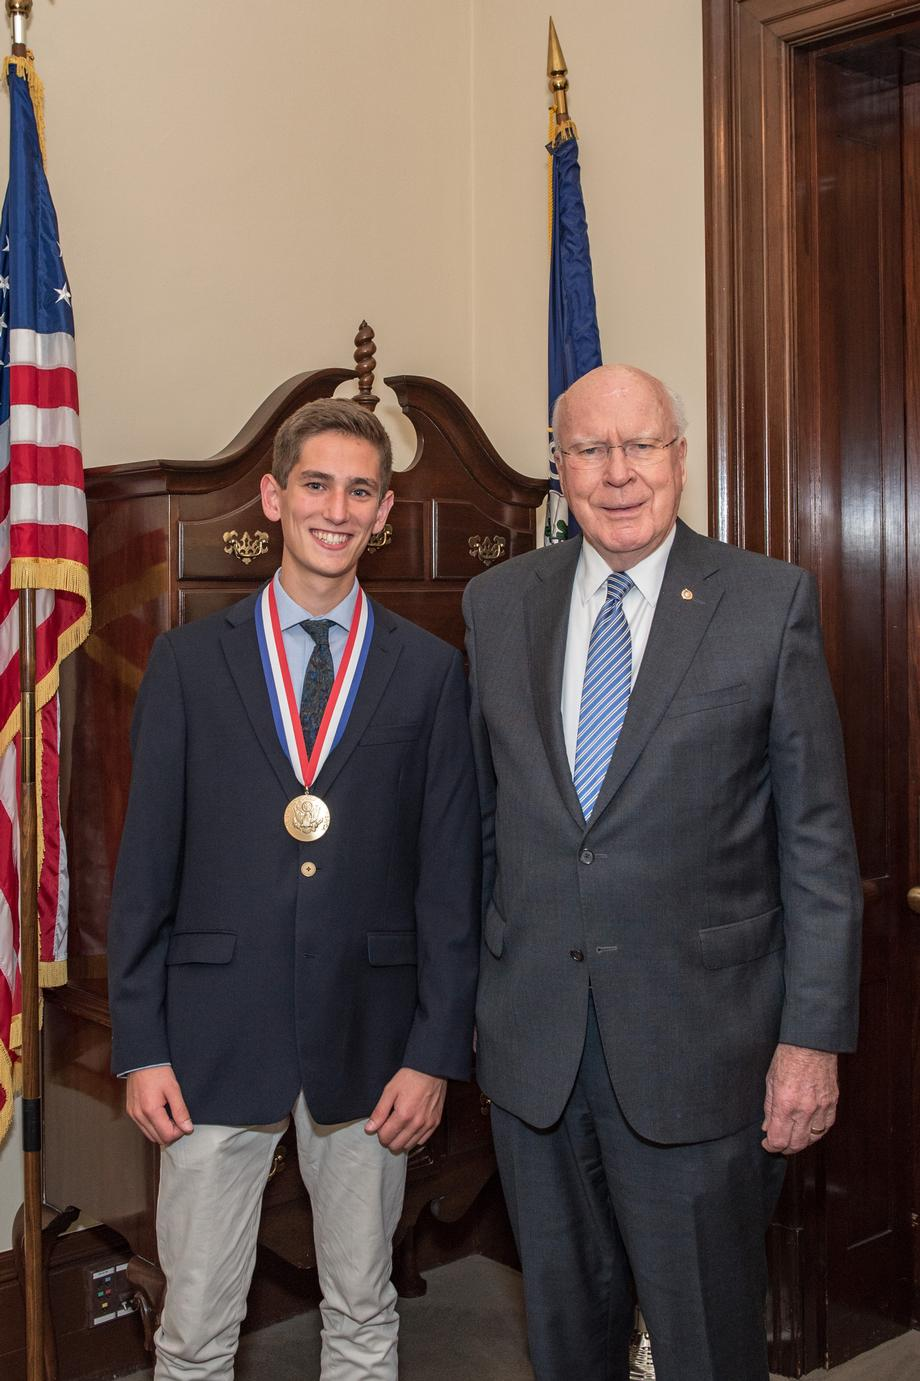 Senator Leahy met with Walker, a Vermont Presidential Scholar to congratulate him on his achievement.